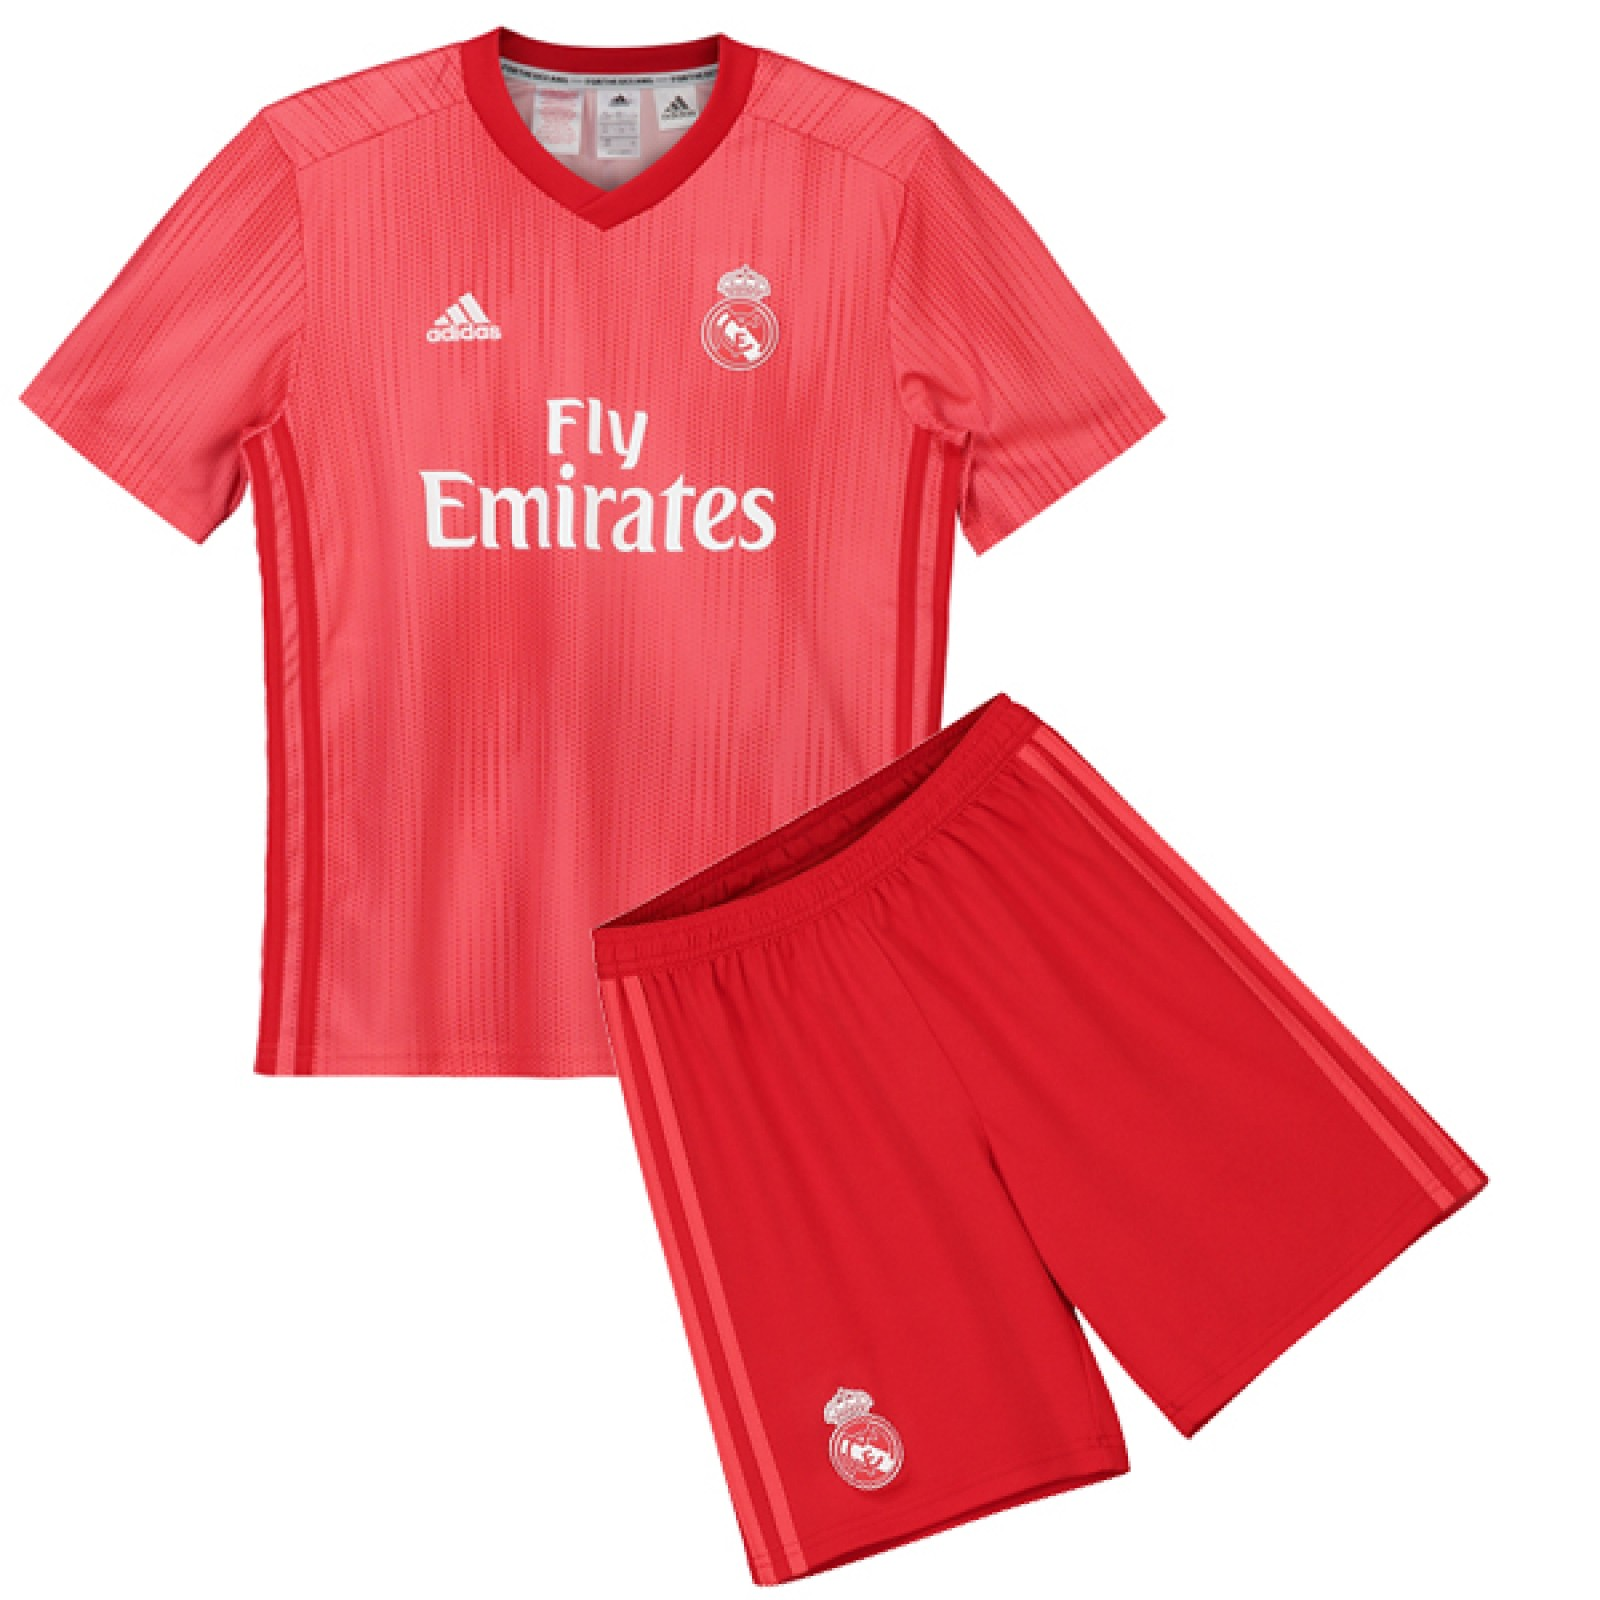 5db7c0f3f Childrens Real Madrid Third Kit 2018 19 from £29.99